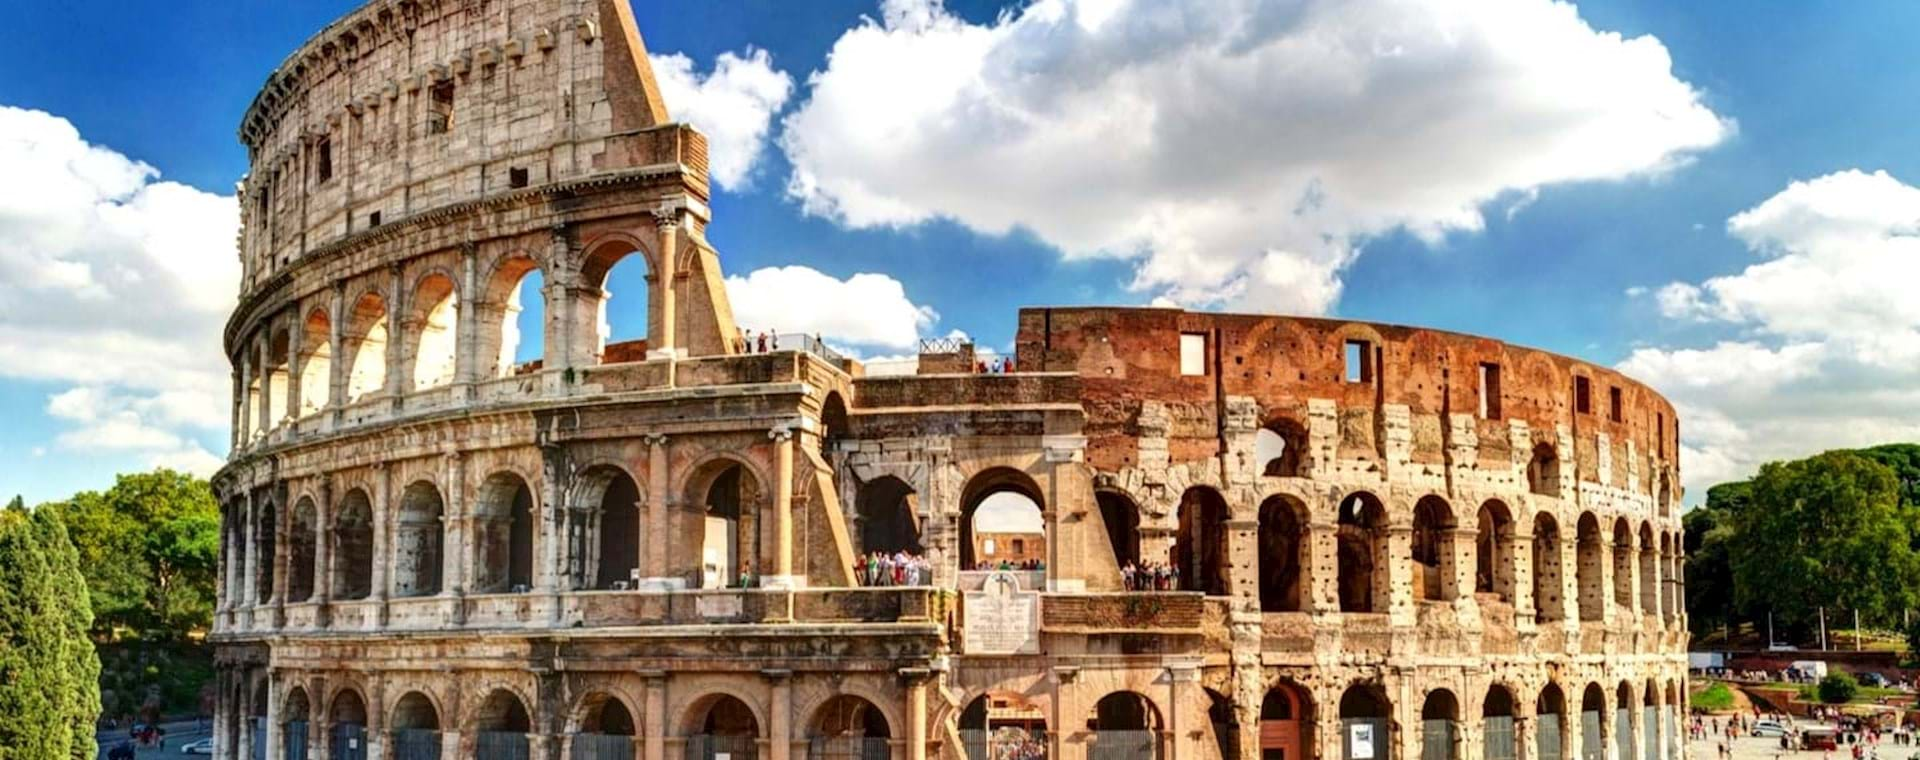 Full-Day Combo: Colosseum & Best of Rome Walking Tour